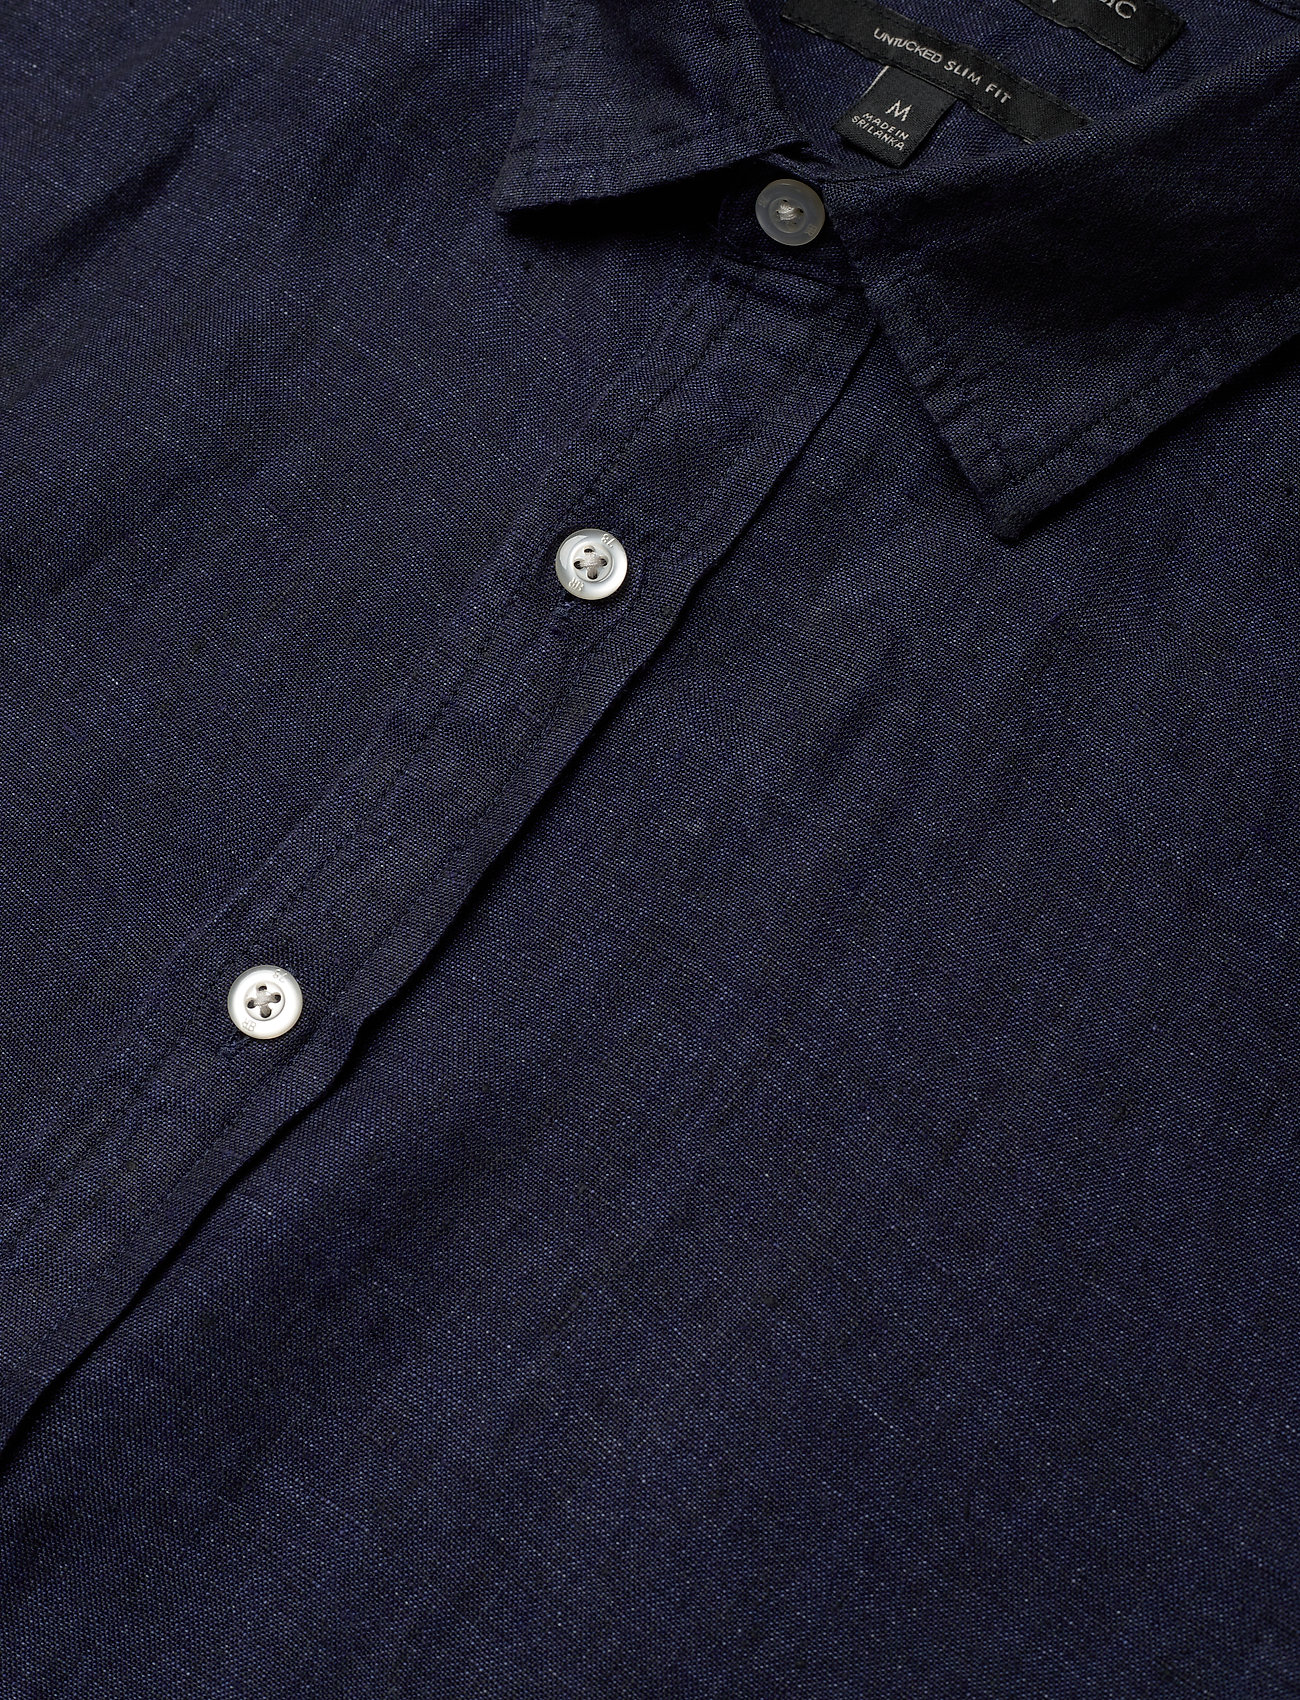 Untucked Slim-fit Linen Shirt (Pacific Blue) (44.50 €) - Banana Republic Ldi7y